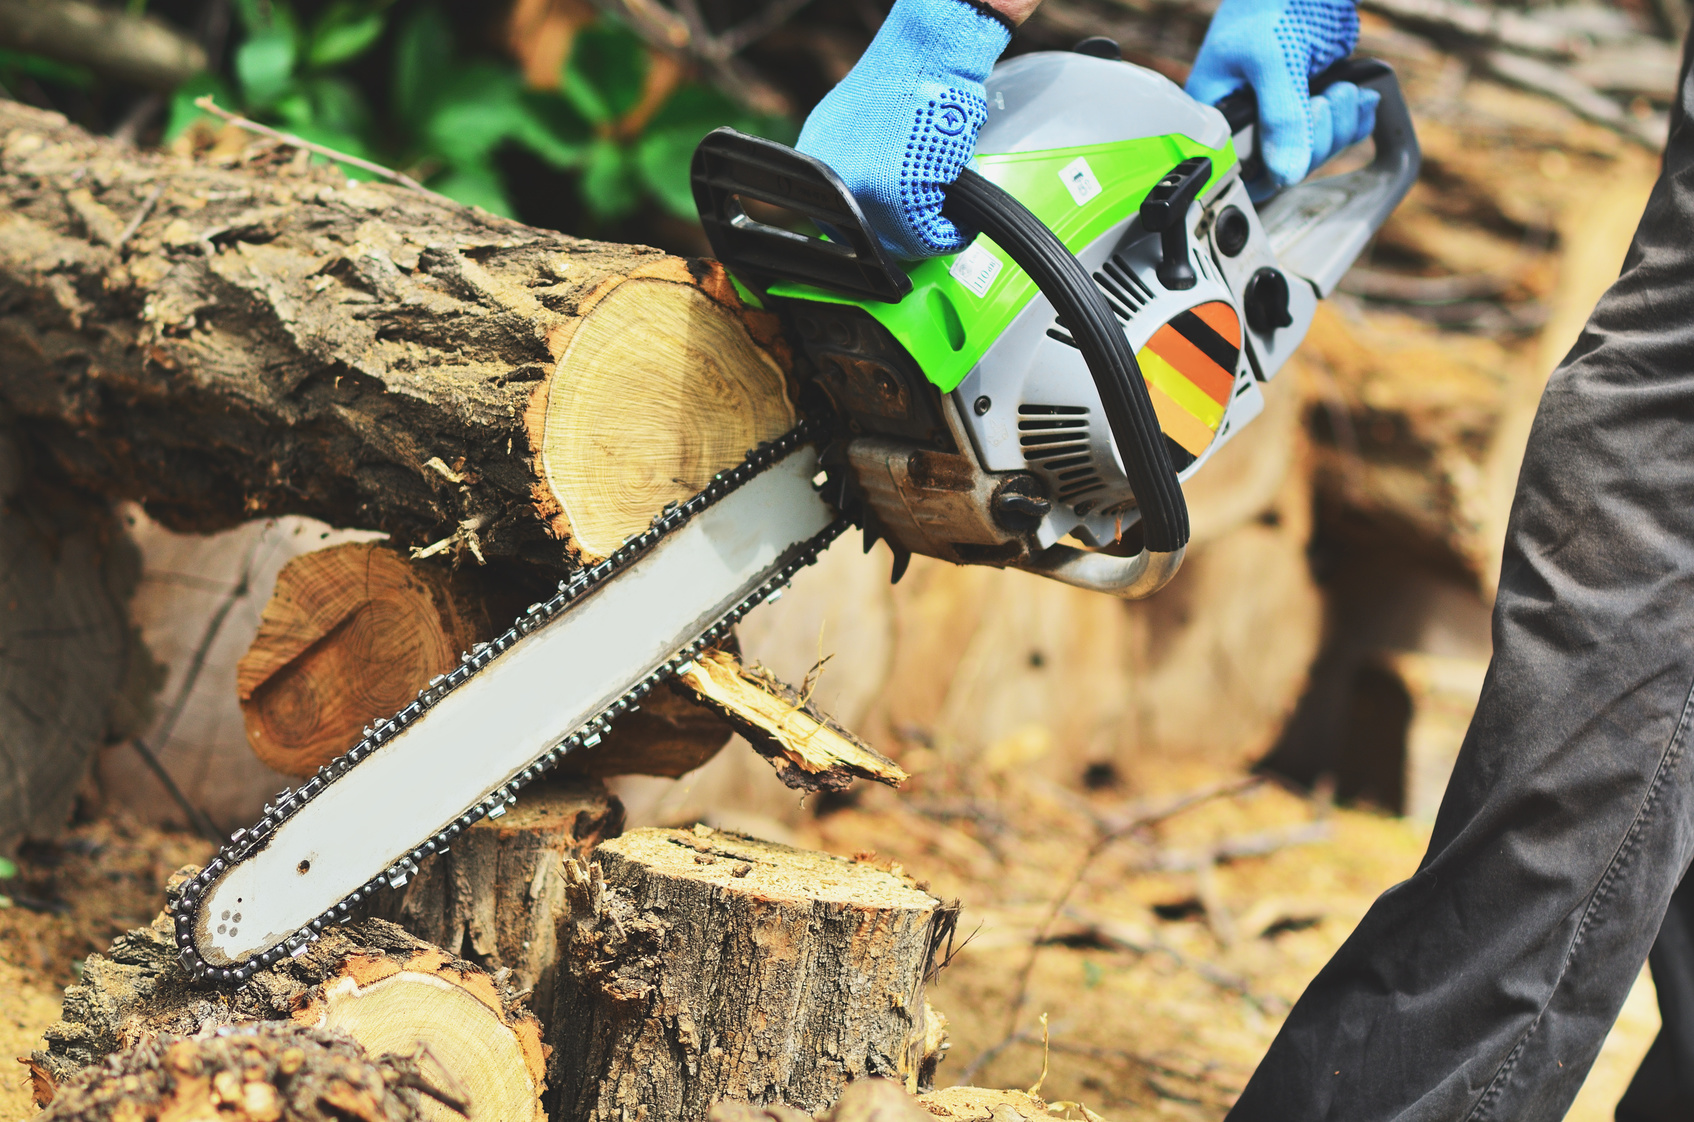 A man in blue mitts cuts a piece of wood from a chainsaw